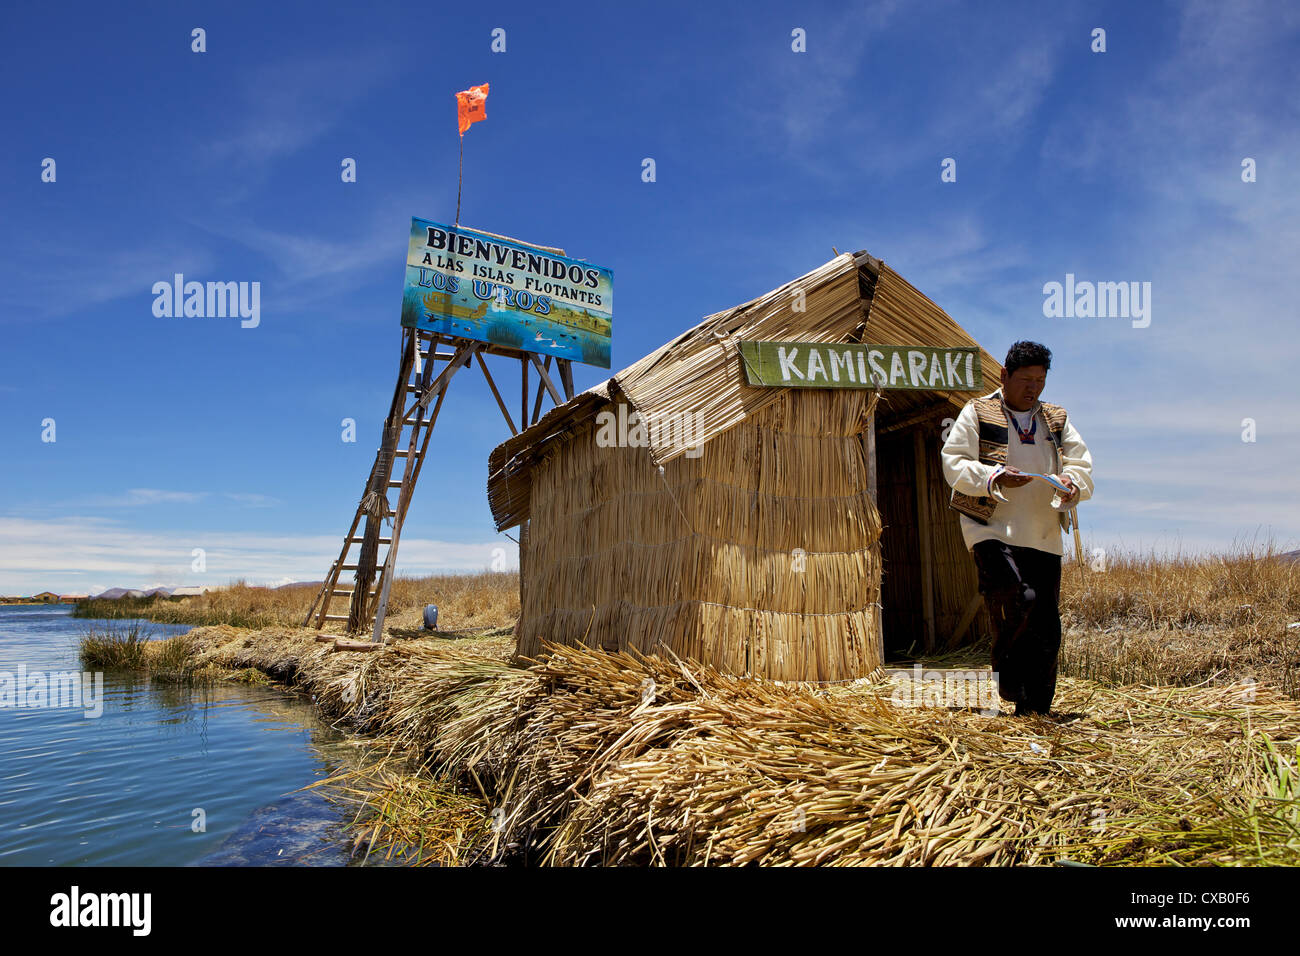 Entrance to Islas Flotantes (Floating Islands), Lake Titicaca, Peru, South America - Stock Image